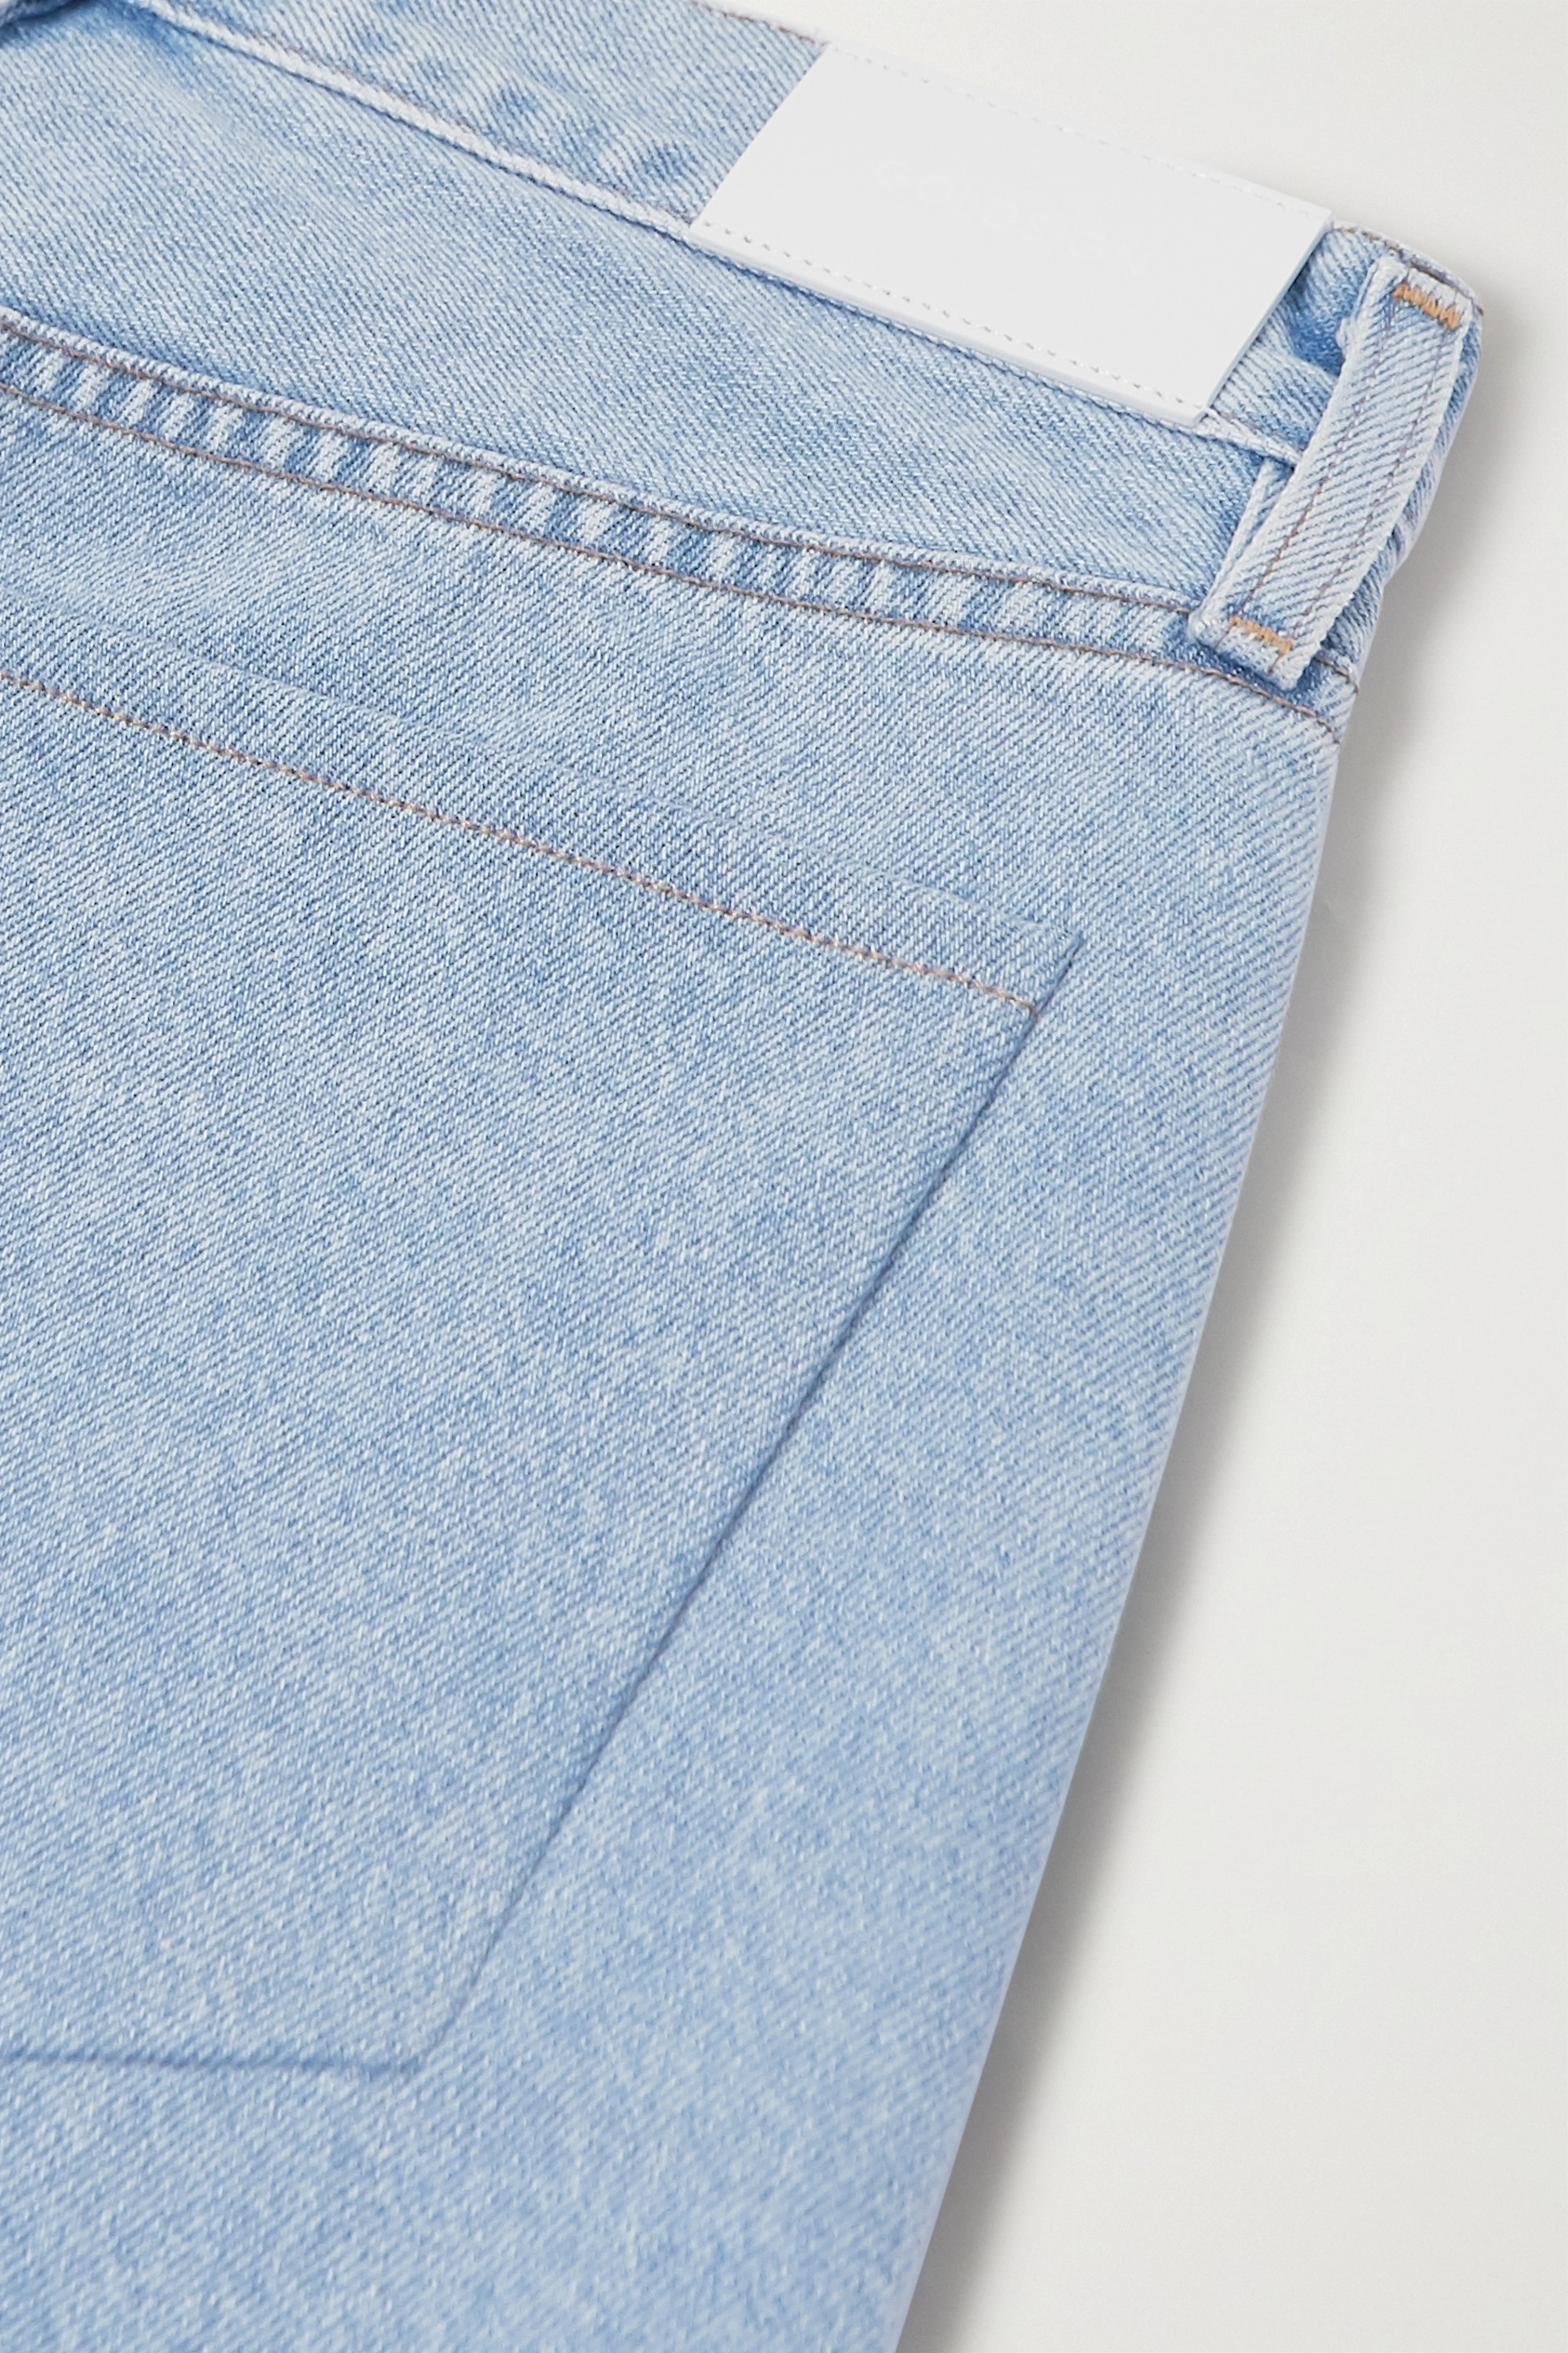 GOLDSIGN + NET SUSTAIN The Low Slung cropped mid-rise straight-leg jeans